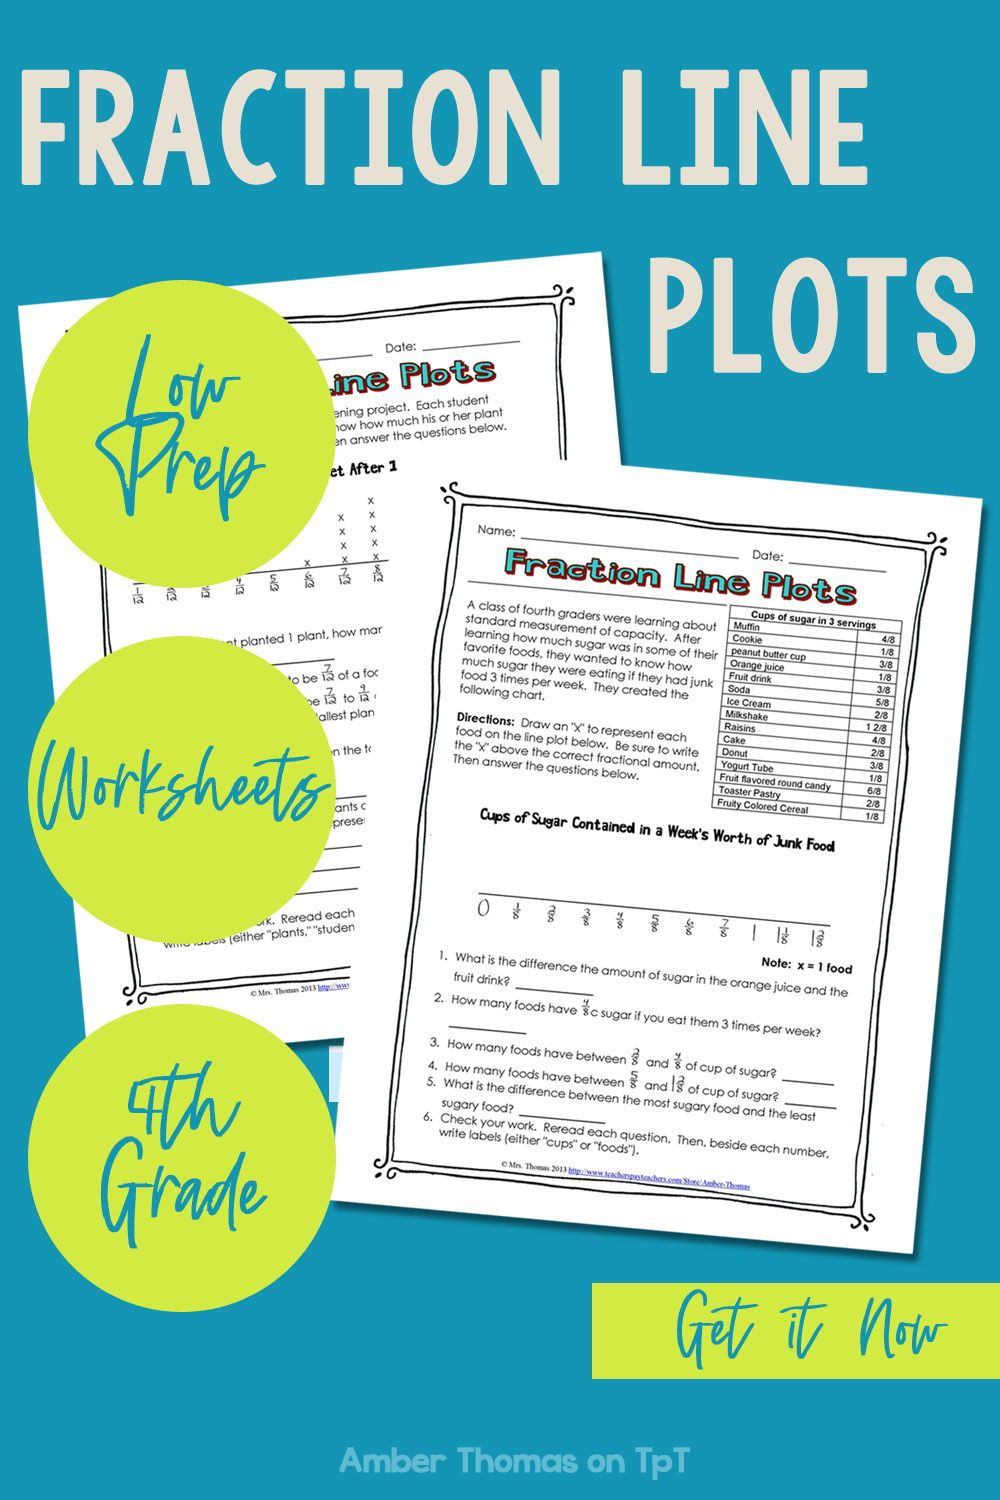 Fraction Line Plot Worksheets Line Plot Worksheets Elementary Math Lessons Elementary Teaching Resources [ 1500 x 1000 Pixel ]